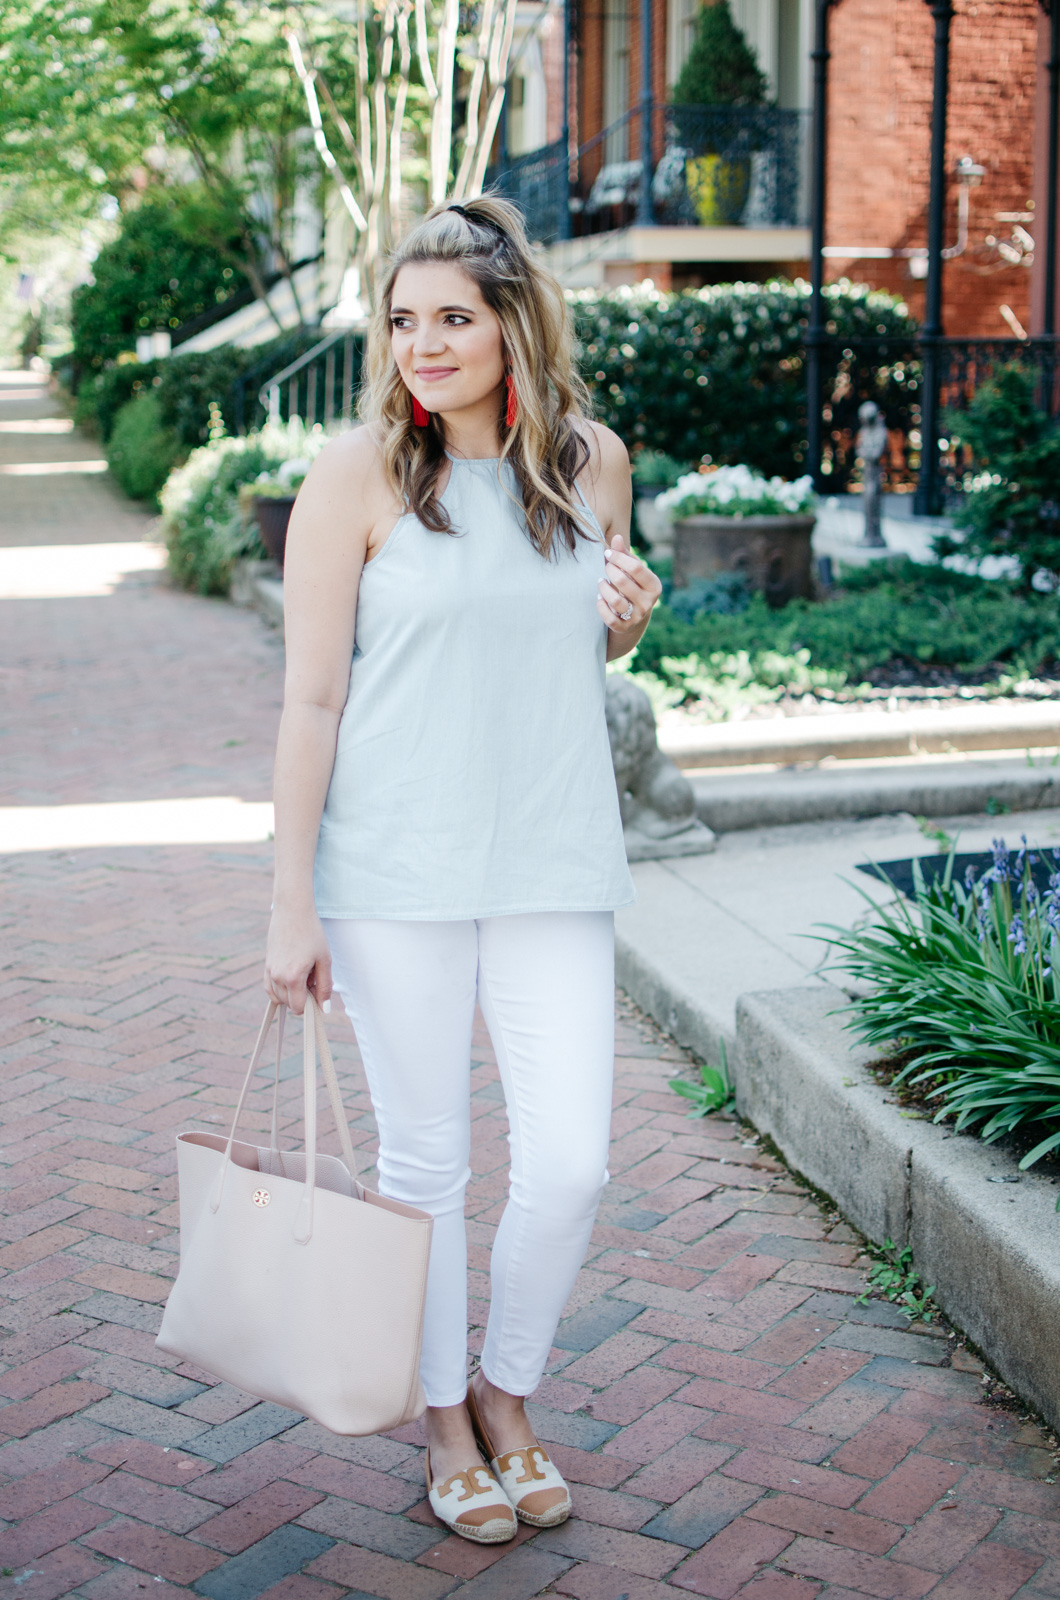 chambray tank with white jeans - favorite spring outfit | For more cute spring outfit ideas, head to bylaurenm.com!